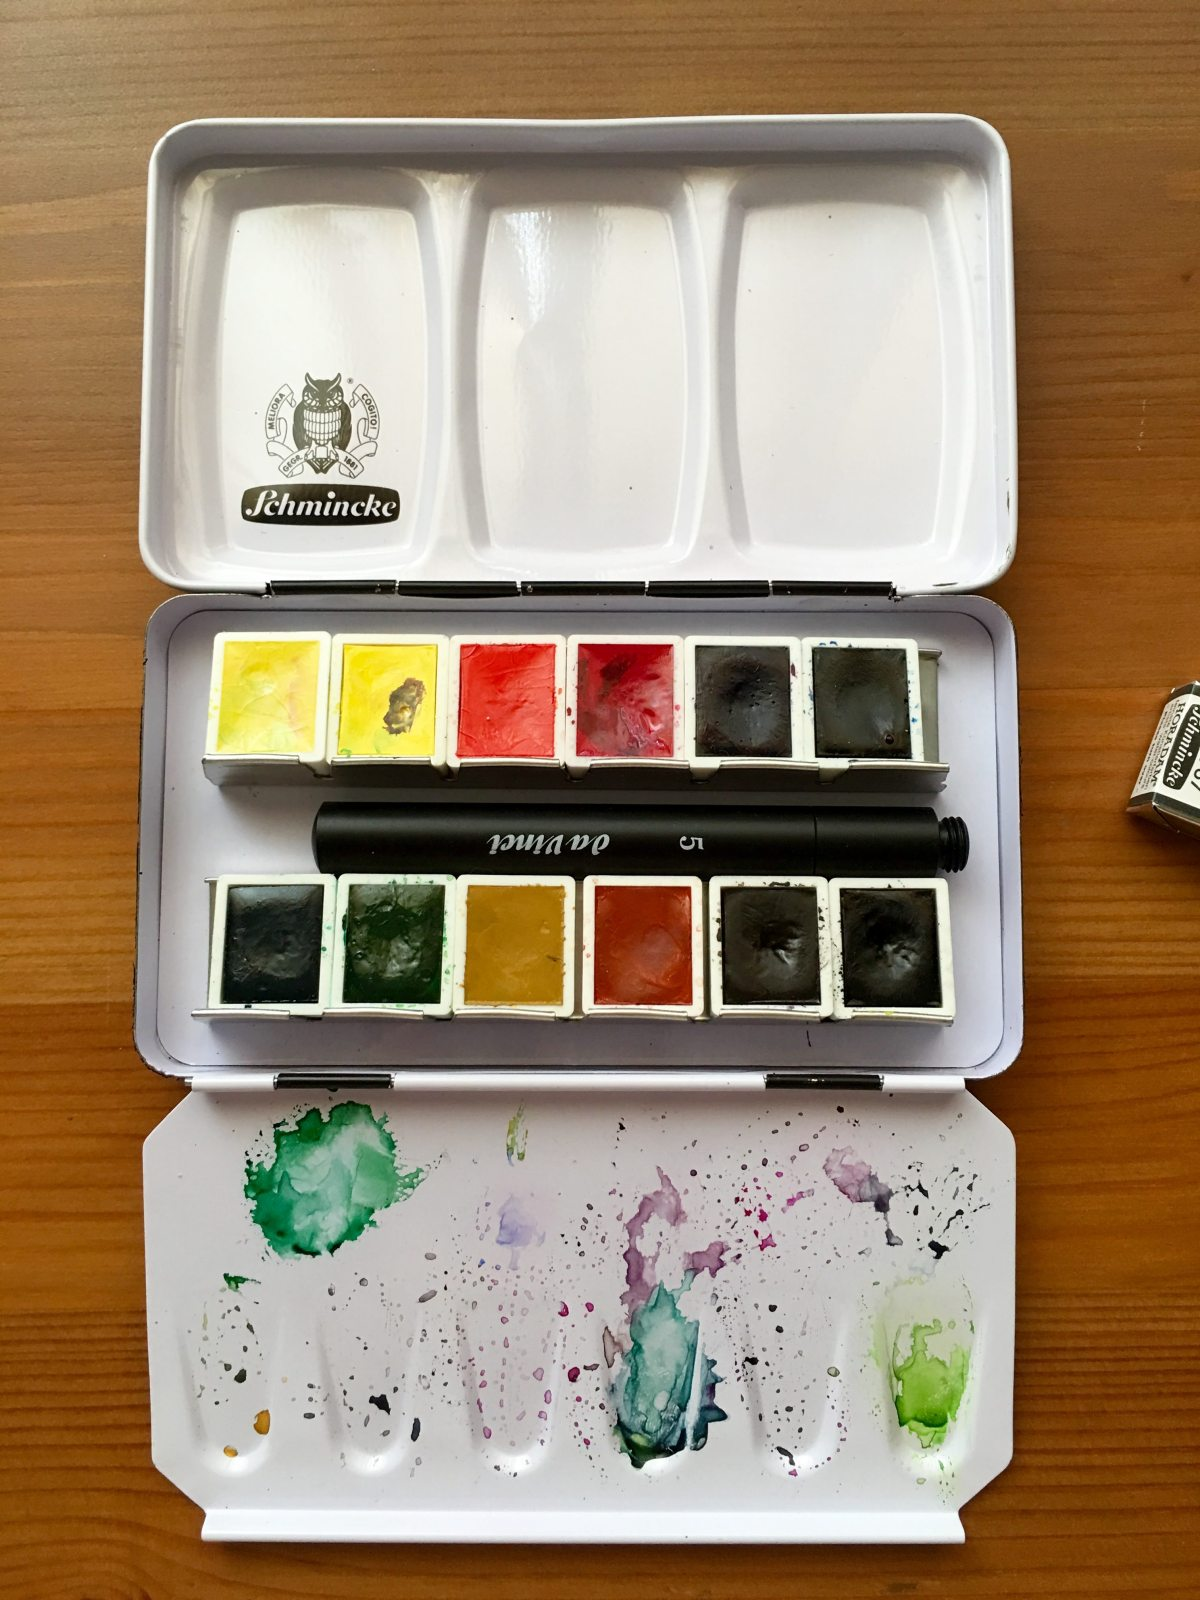 Schmincke metal watercolor travel palette with a da vinci size 5 travel brush